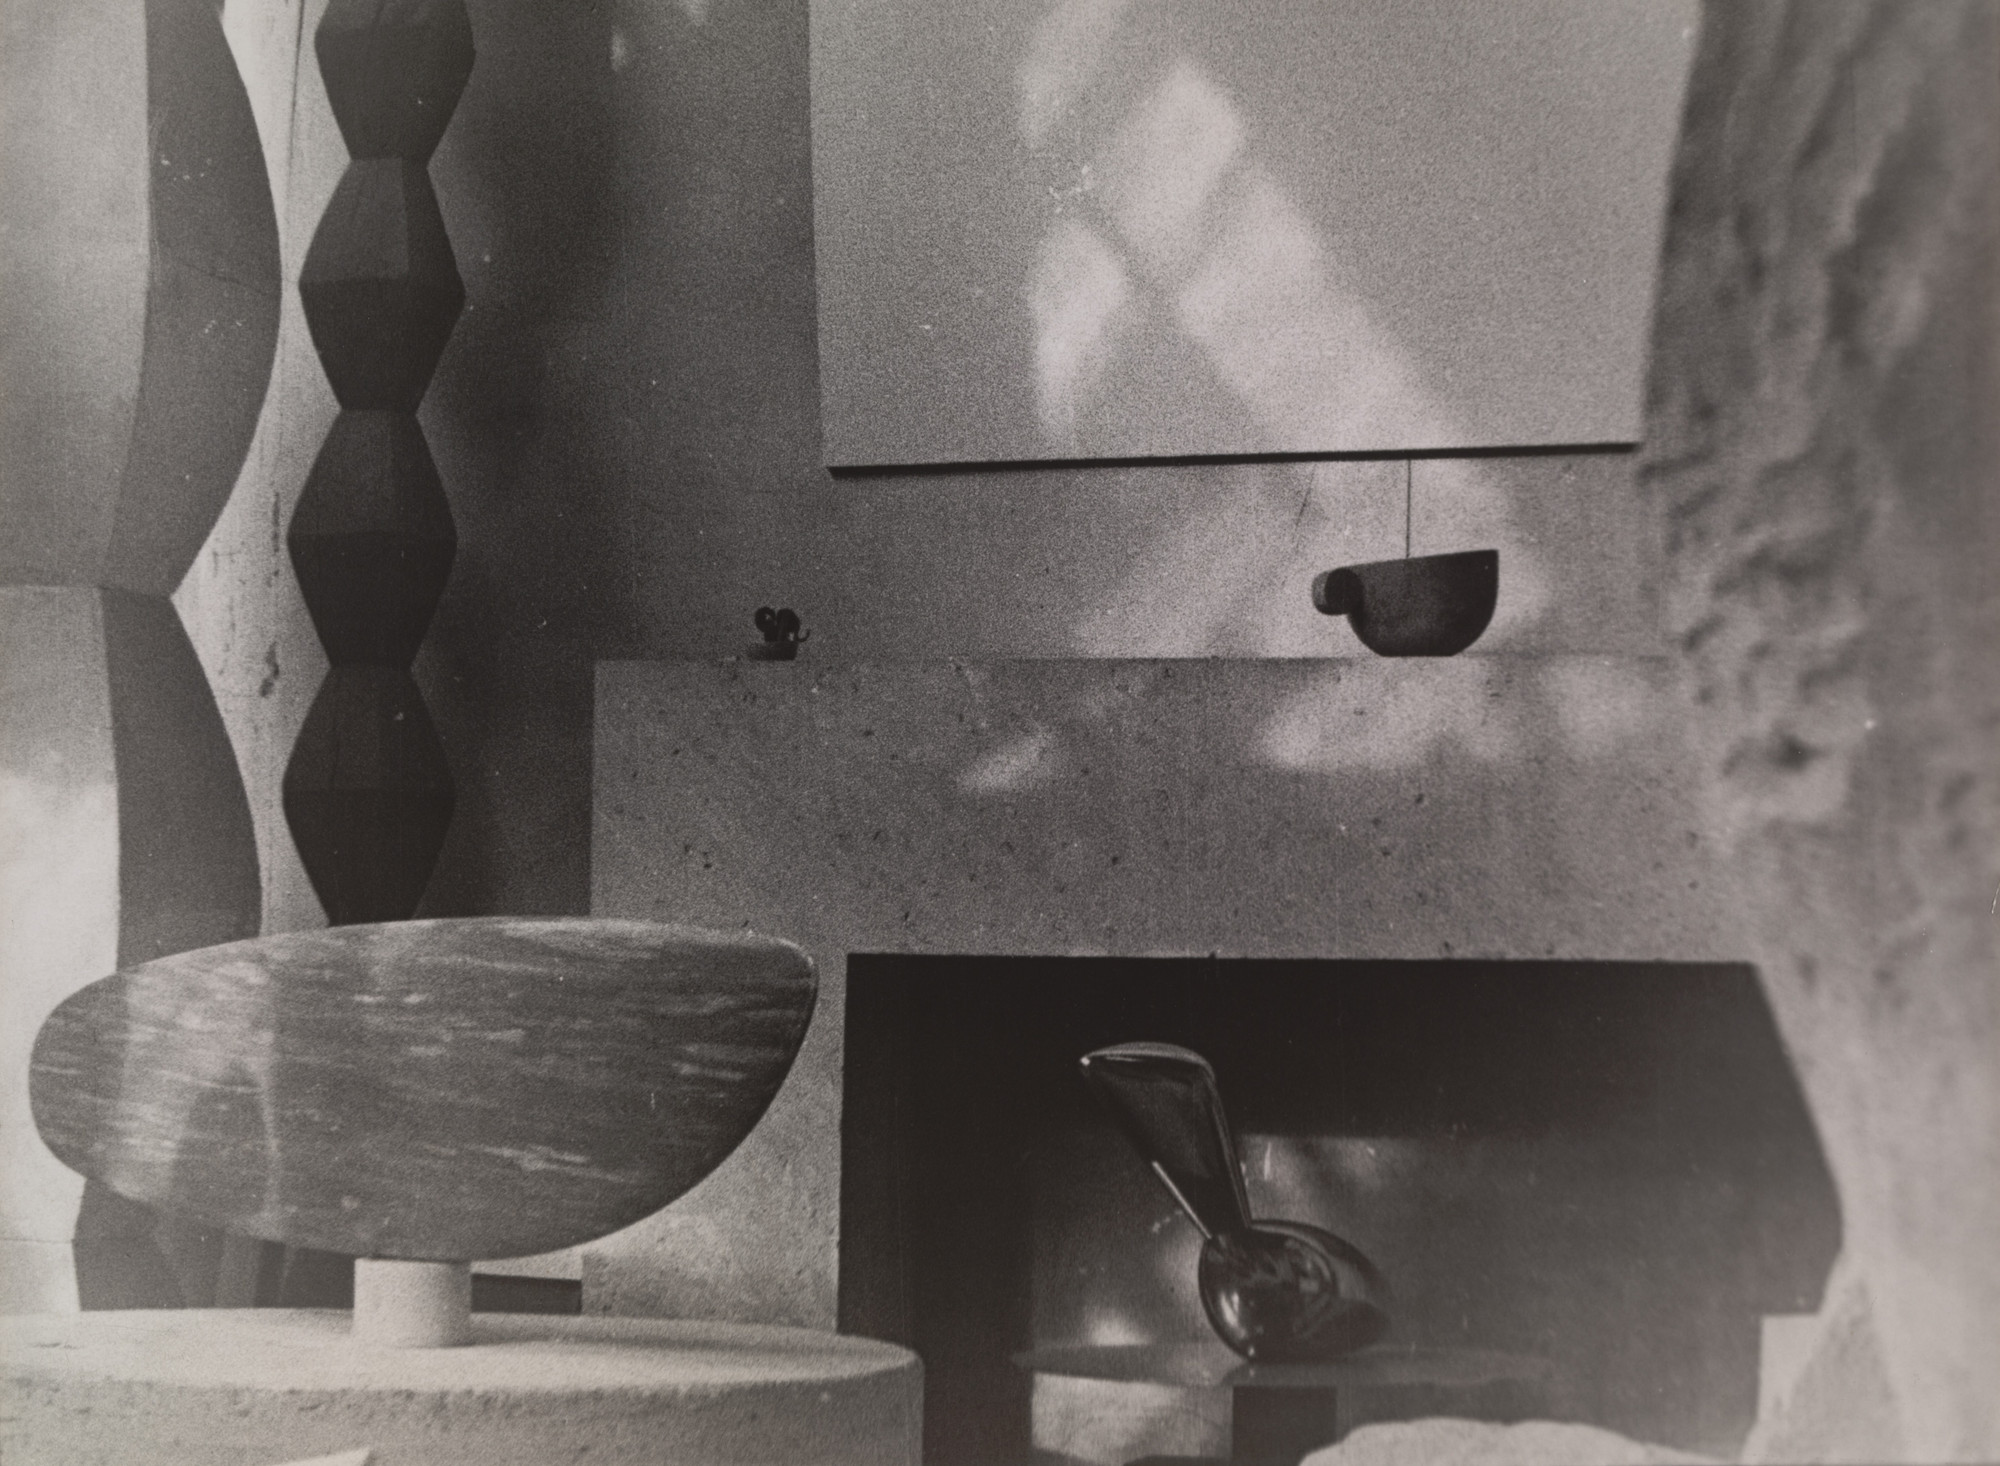 Constantin Brancusi. Untitled (View of the Studio with Endless Columns III and IV, The Fish, Leda, and Cup II). c. 1933-34